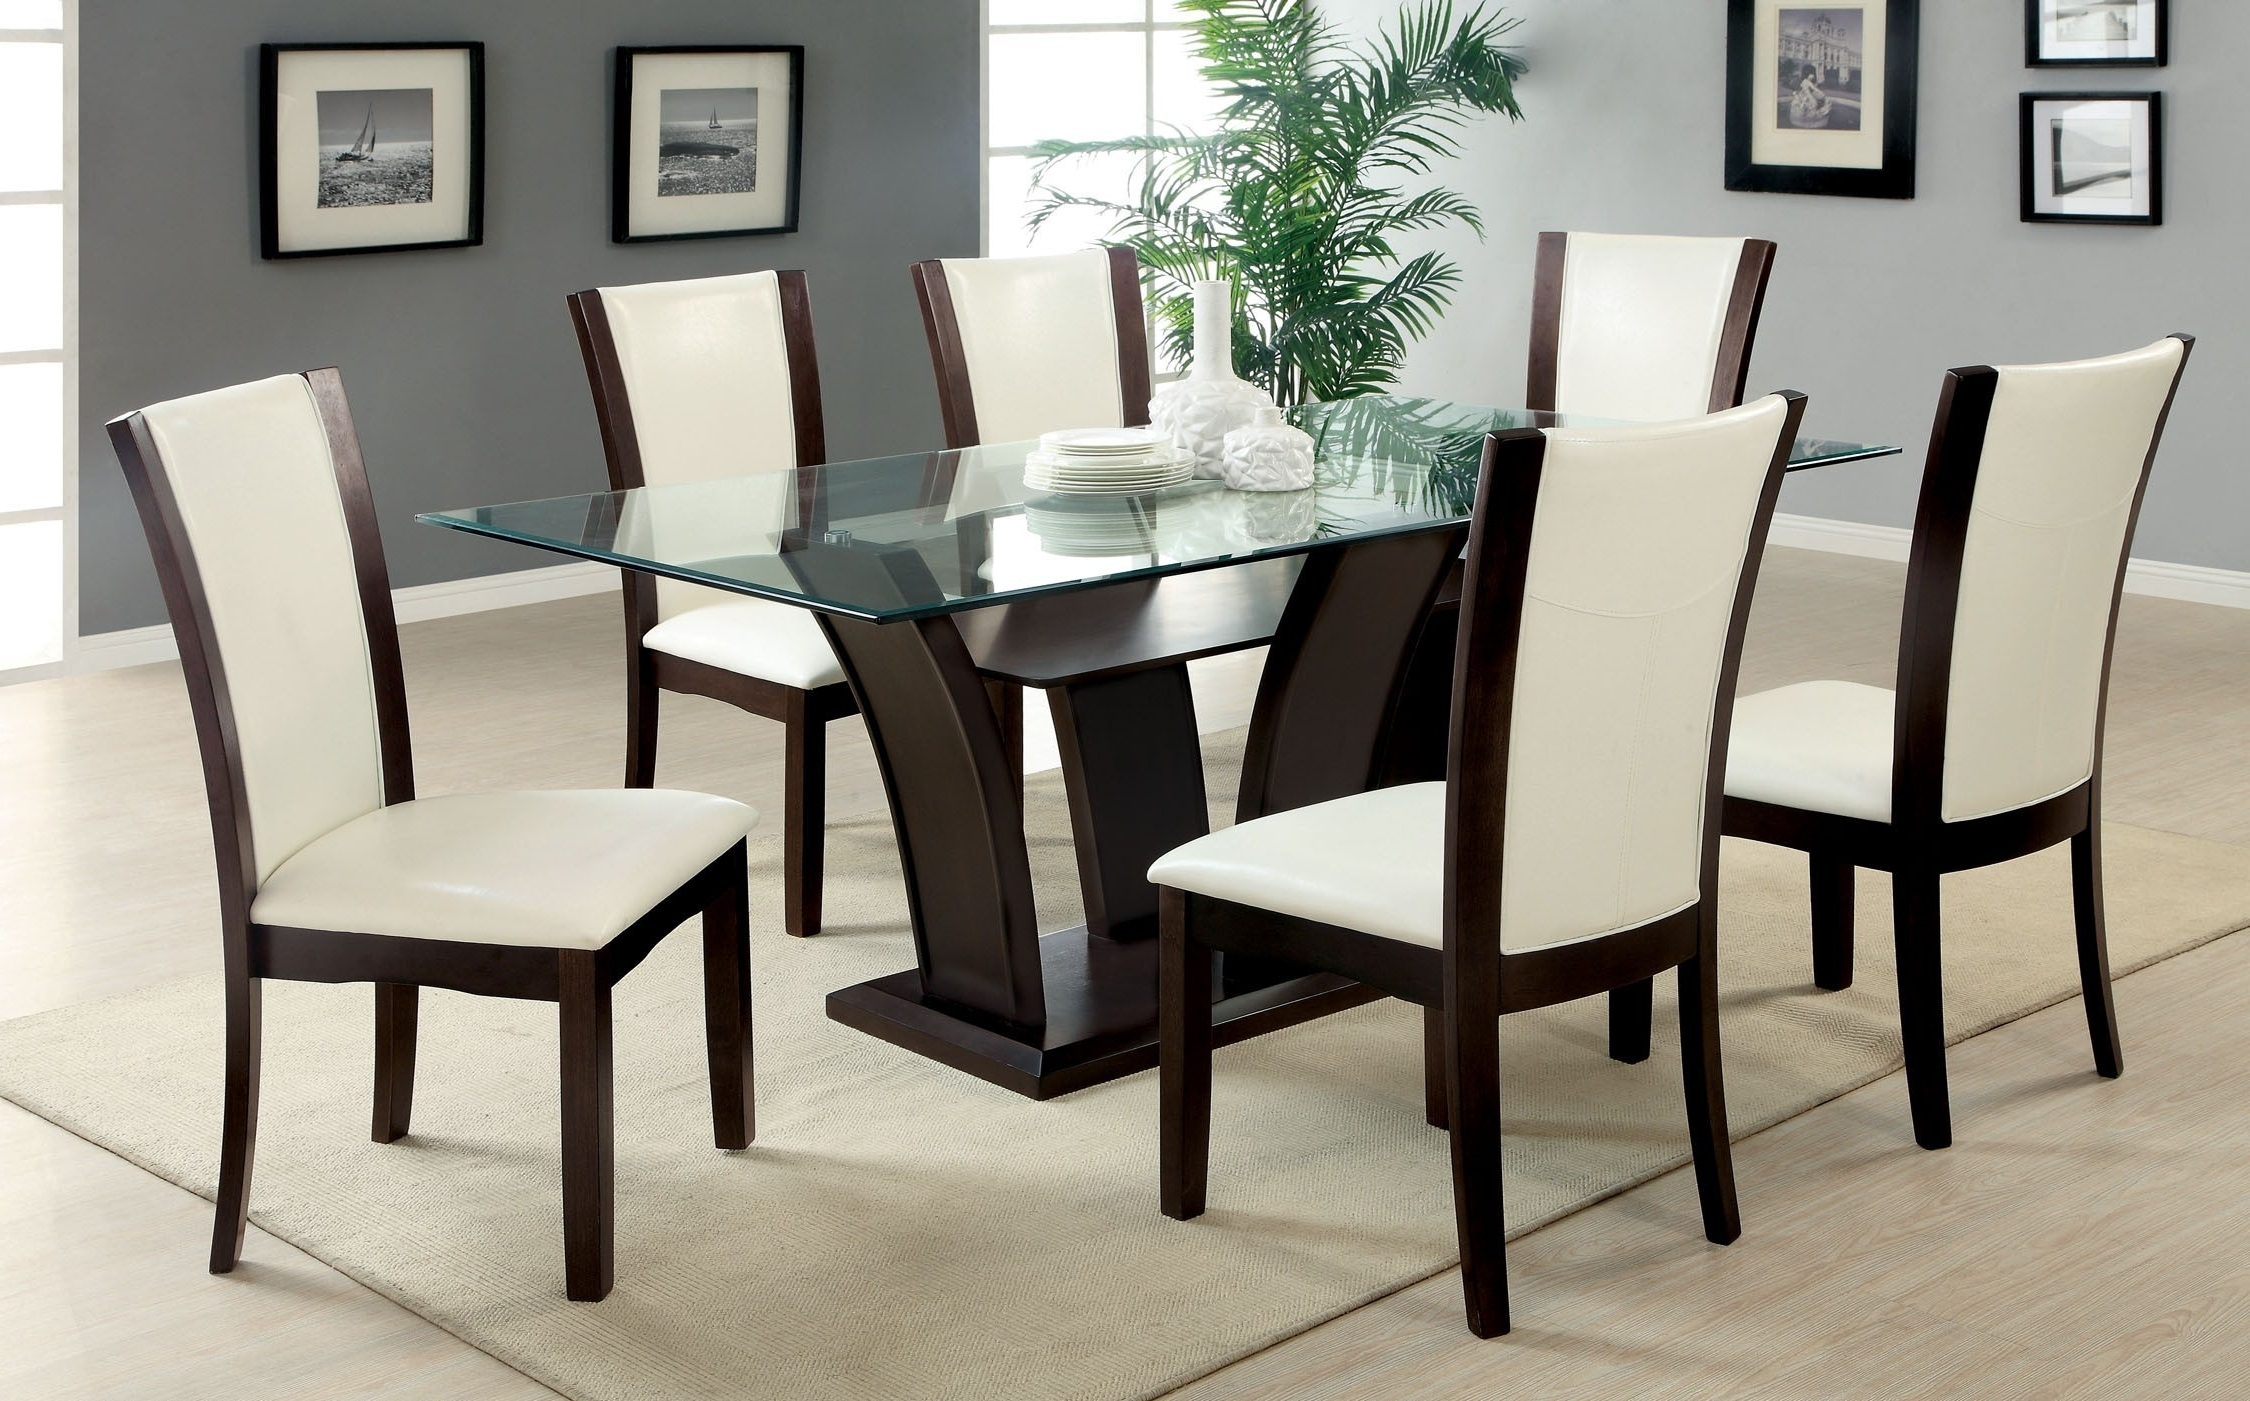 White 8 Seater Dining Tables Pertaining To Fashionable Glamorous Round Dining Table Set For 8 Dimensions Large Chairs And (View 24 of 25)